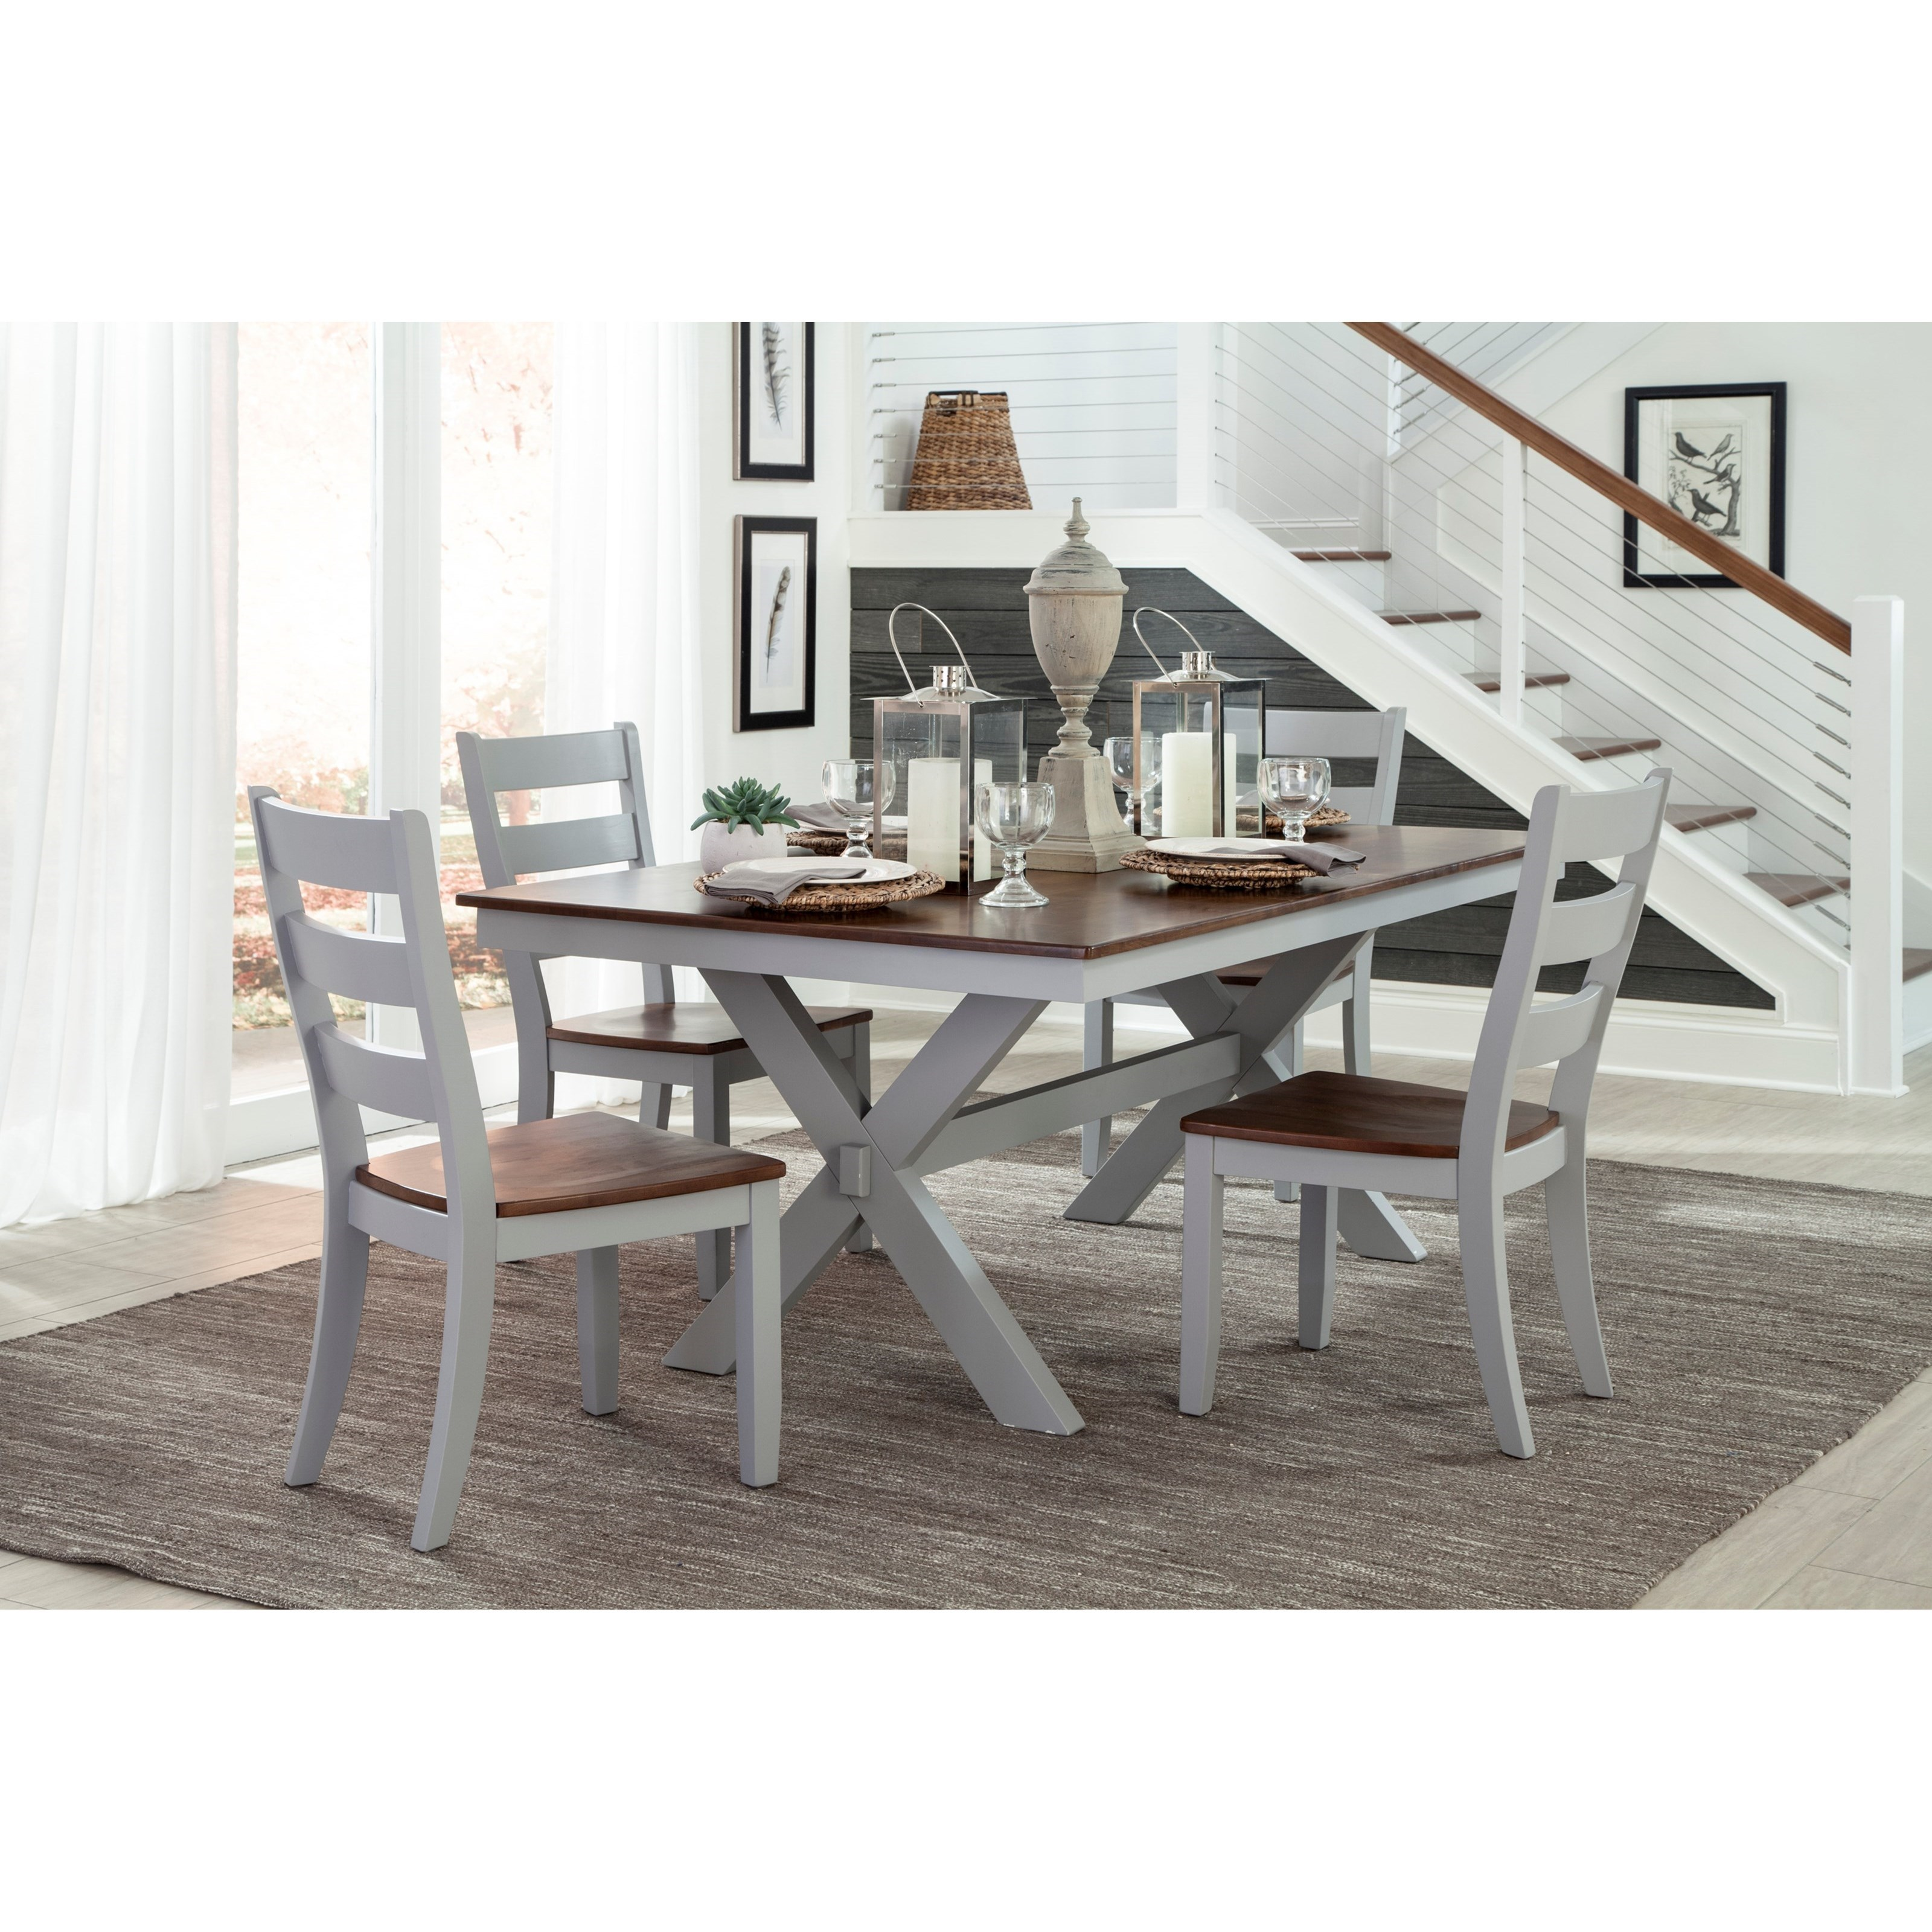 Small Space 5 Piece Dining Set at Sadler's Home Furnishings